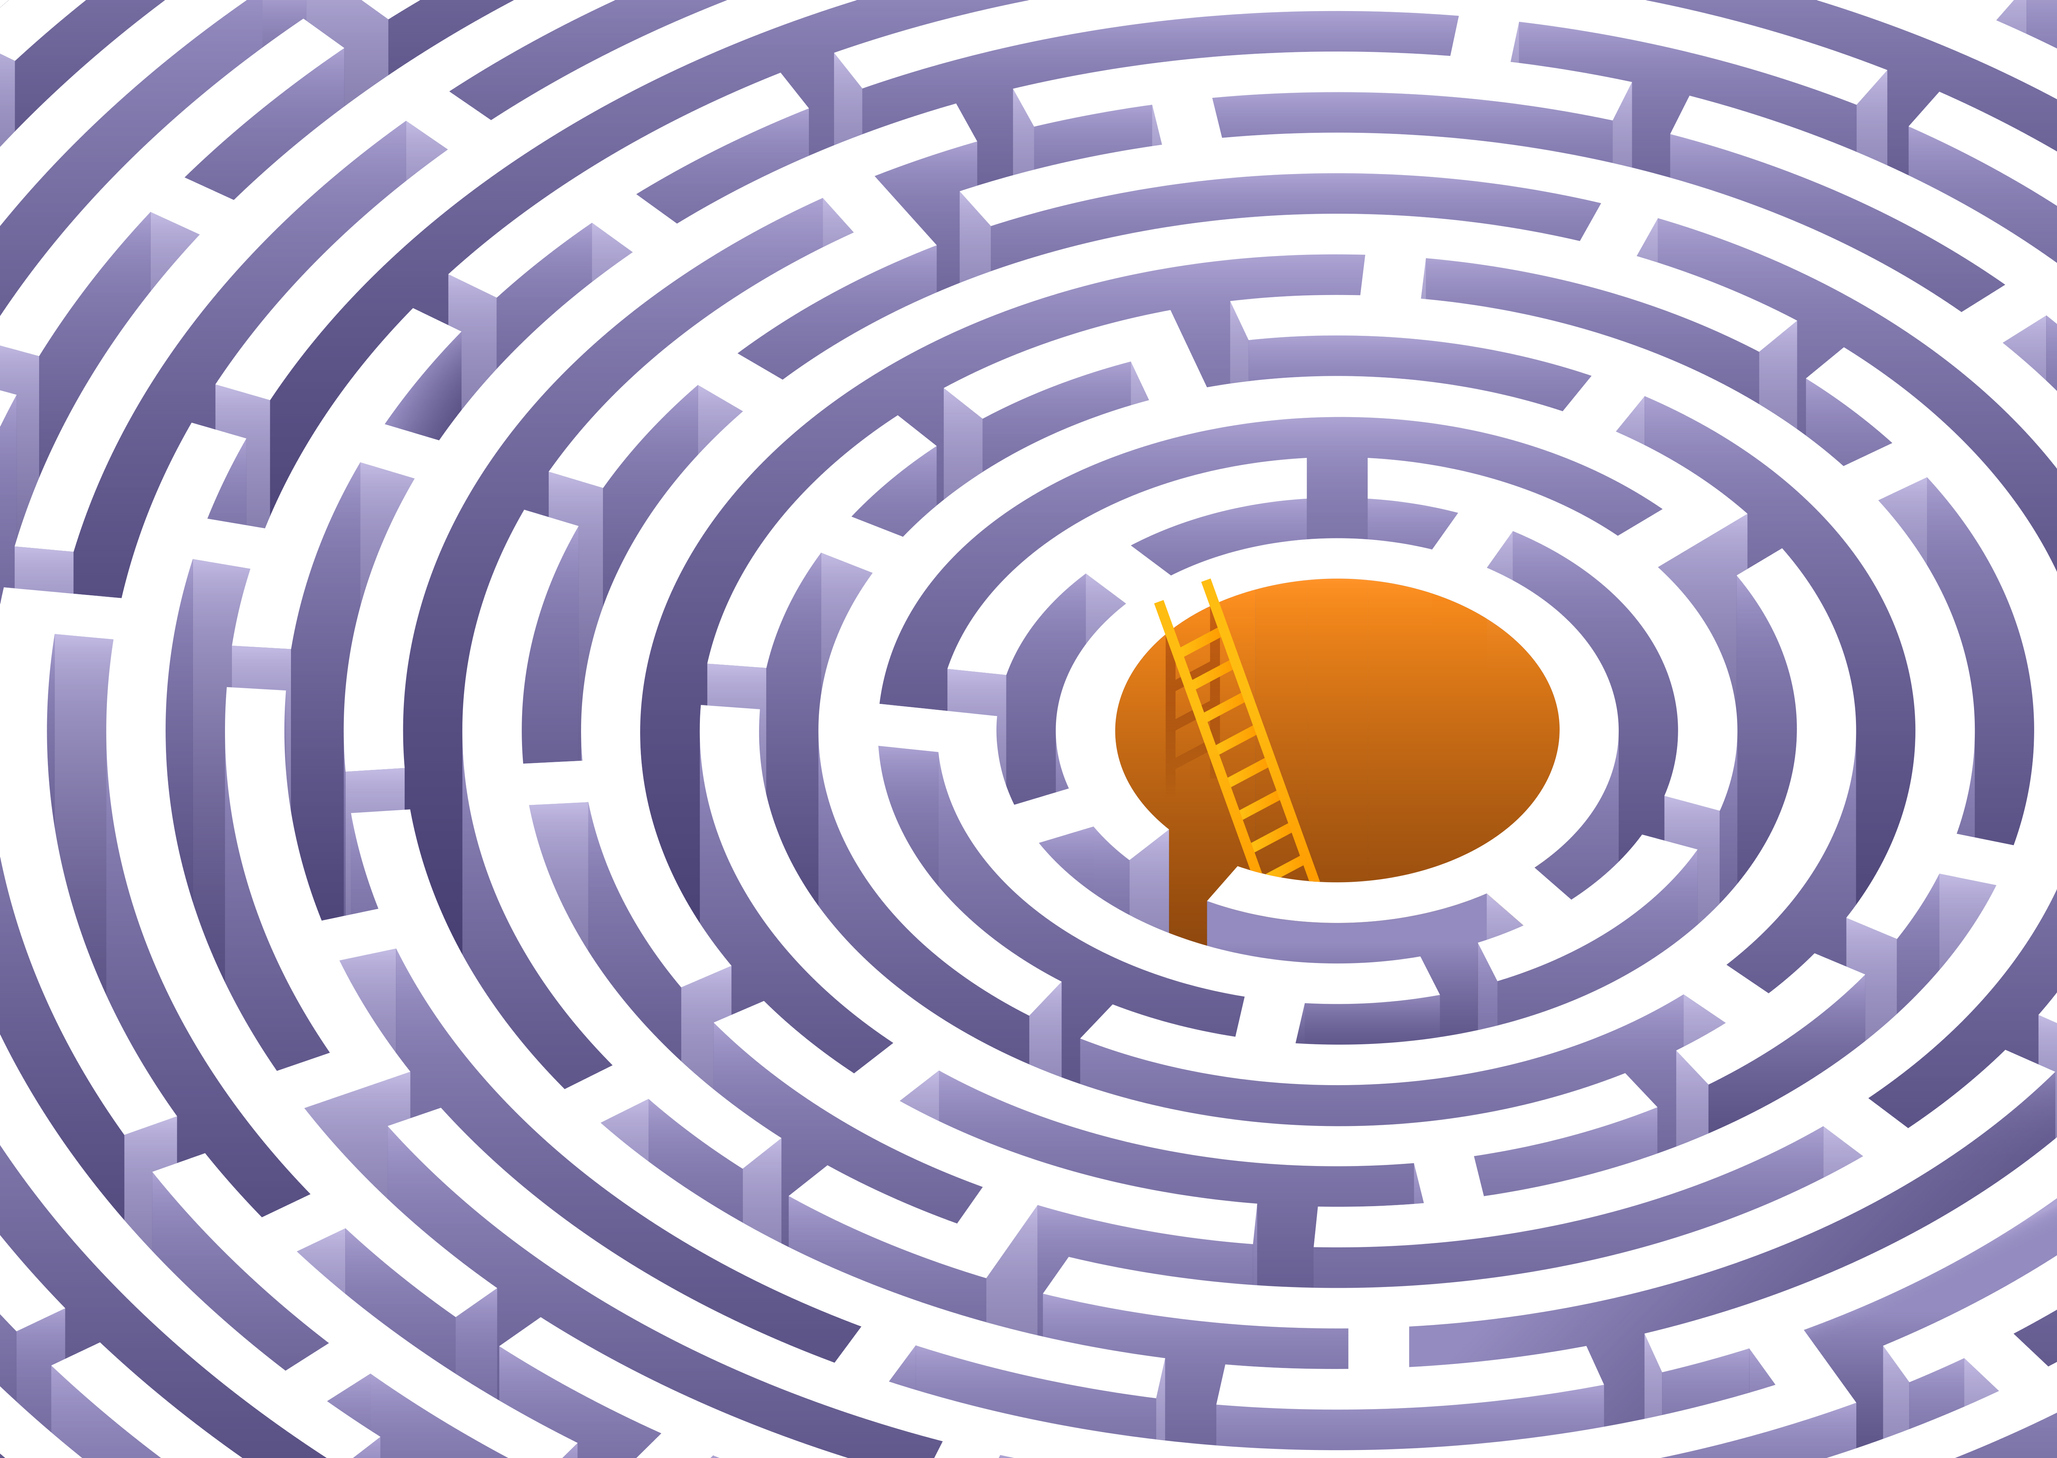 Illustration of a circular maze with a ladder emerging from the center